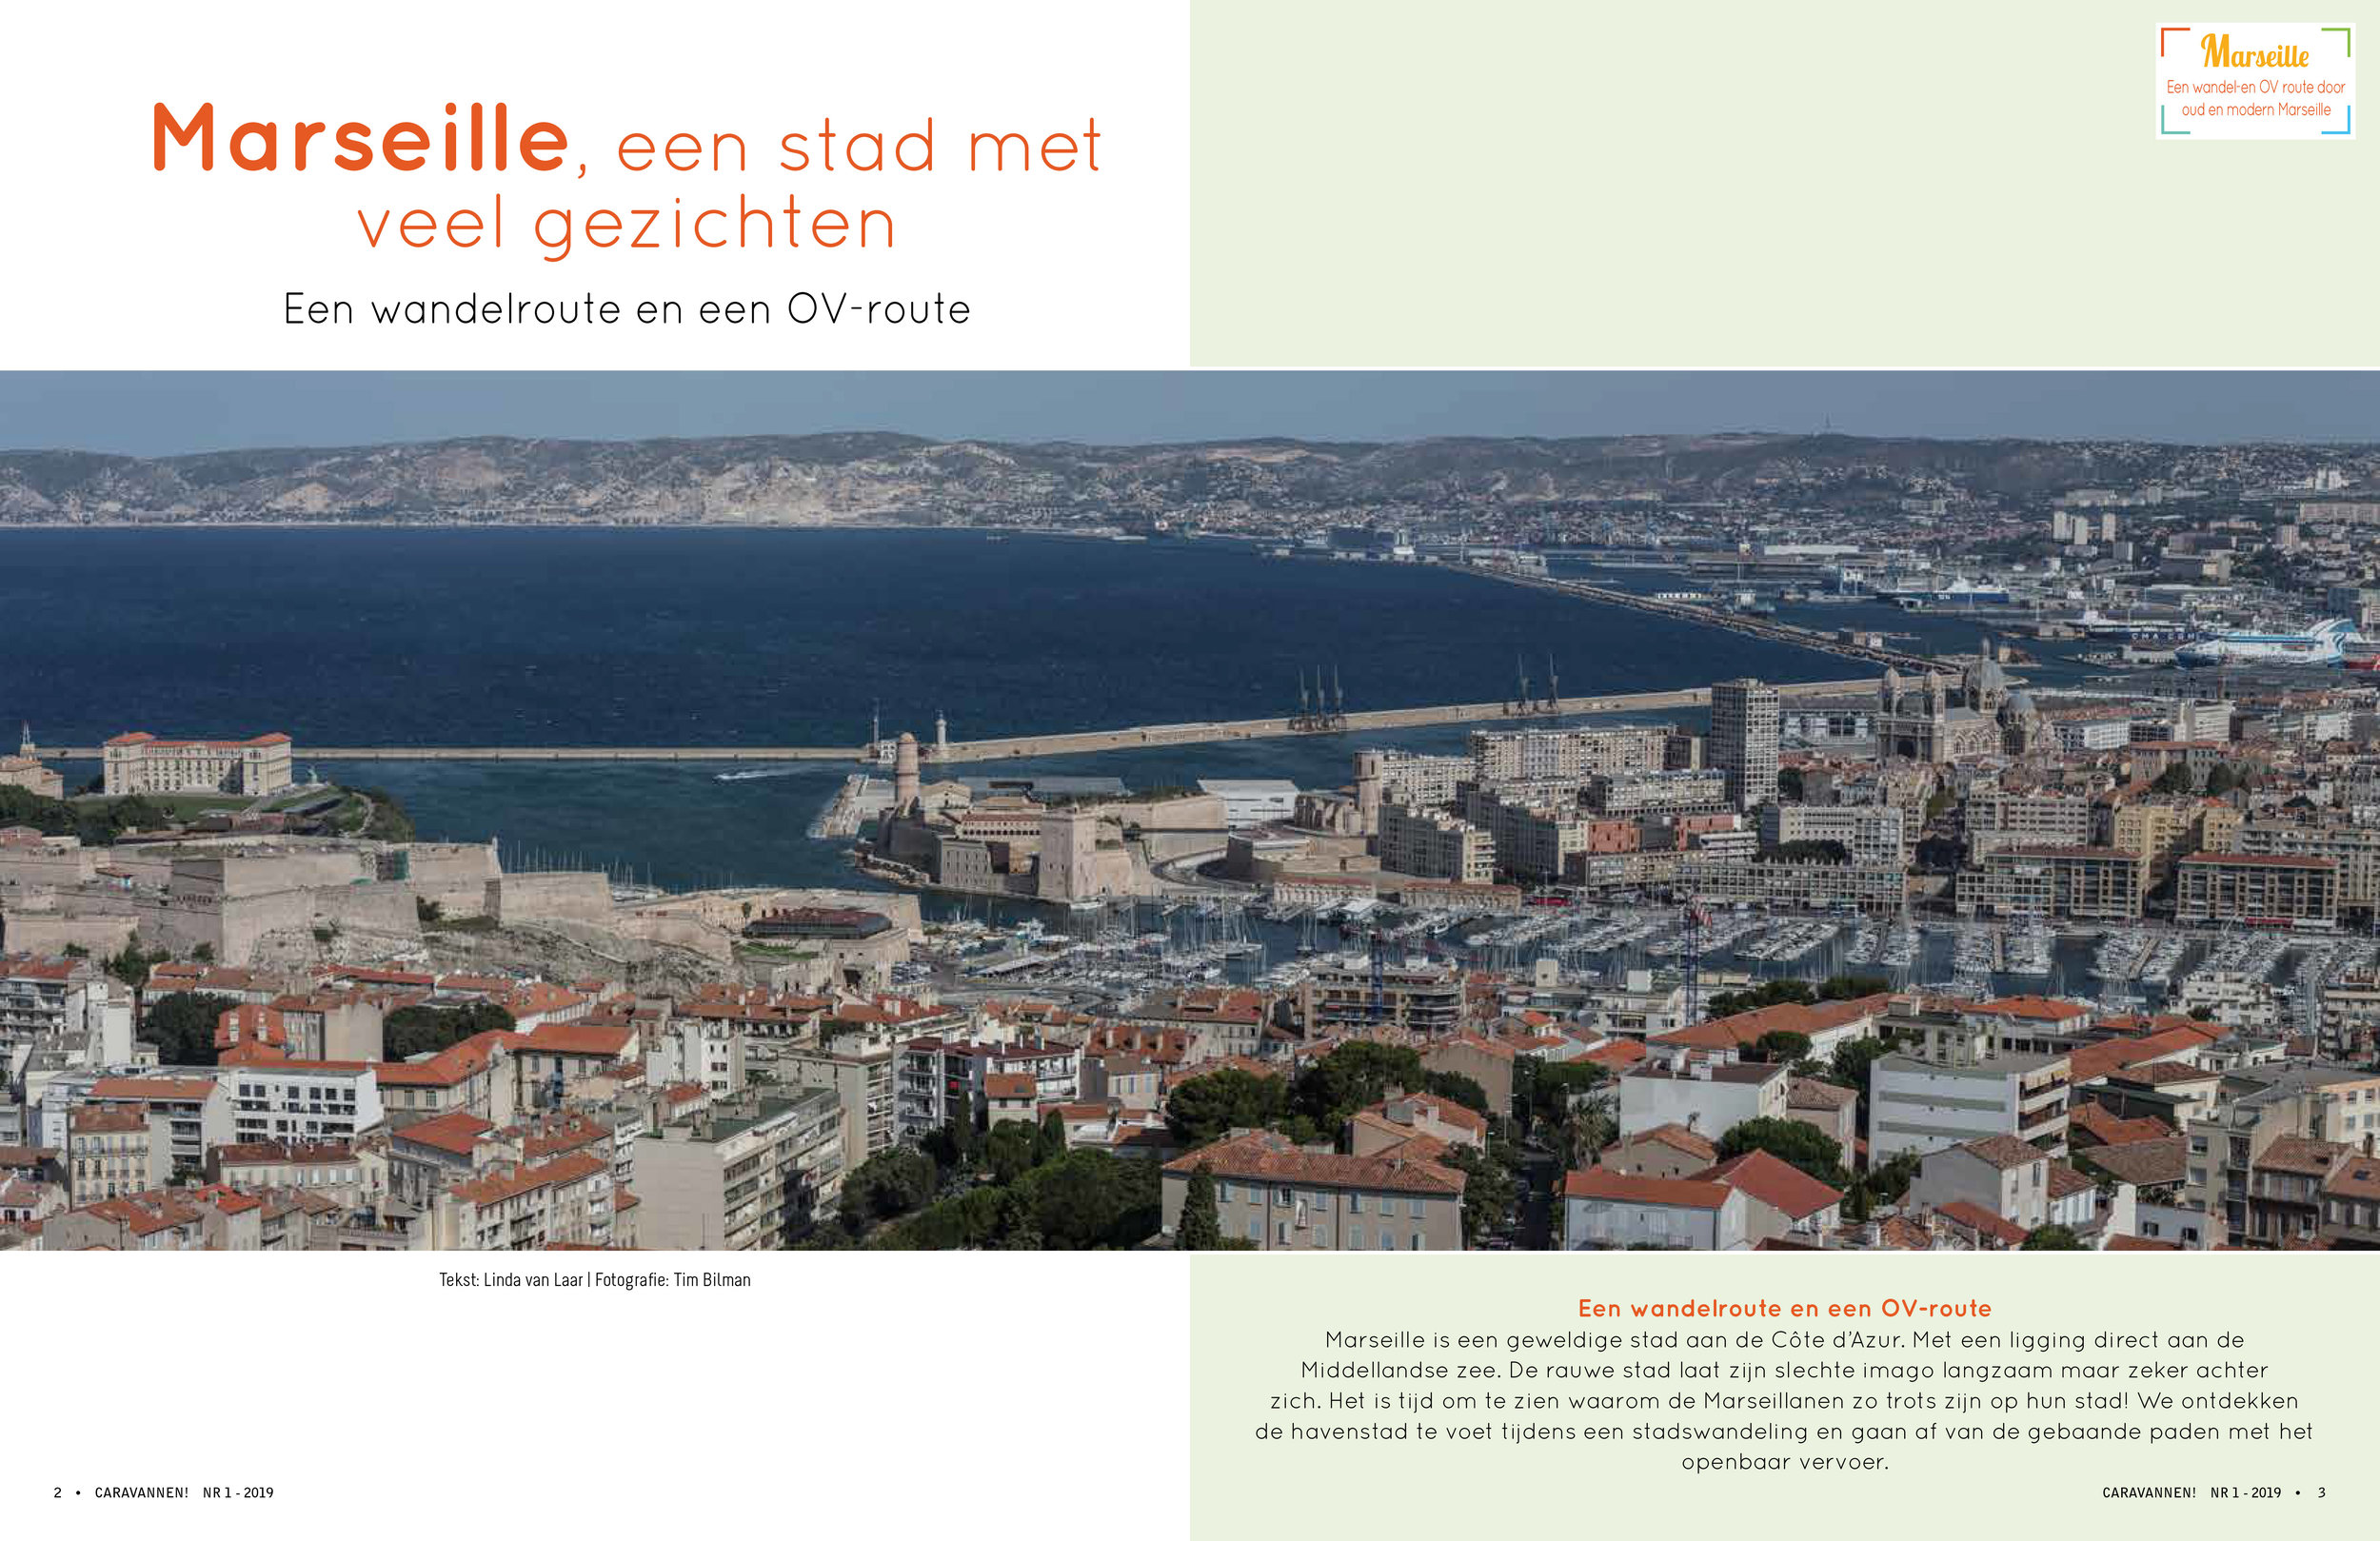 Marseille - For the dutch magazine Caravannen! We wrote an article about this urban harbor city. Marseille is a lovely citytrip location! The article was published Early '19 in Caravannen!.